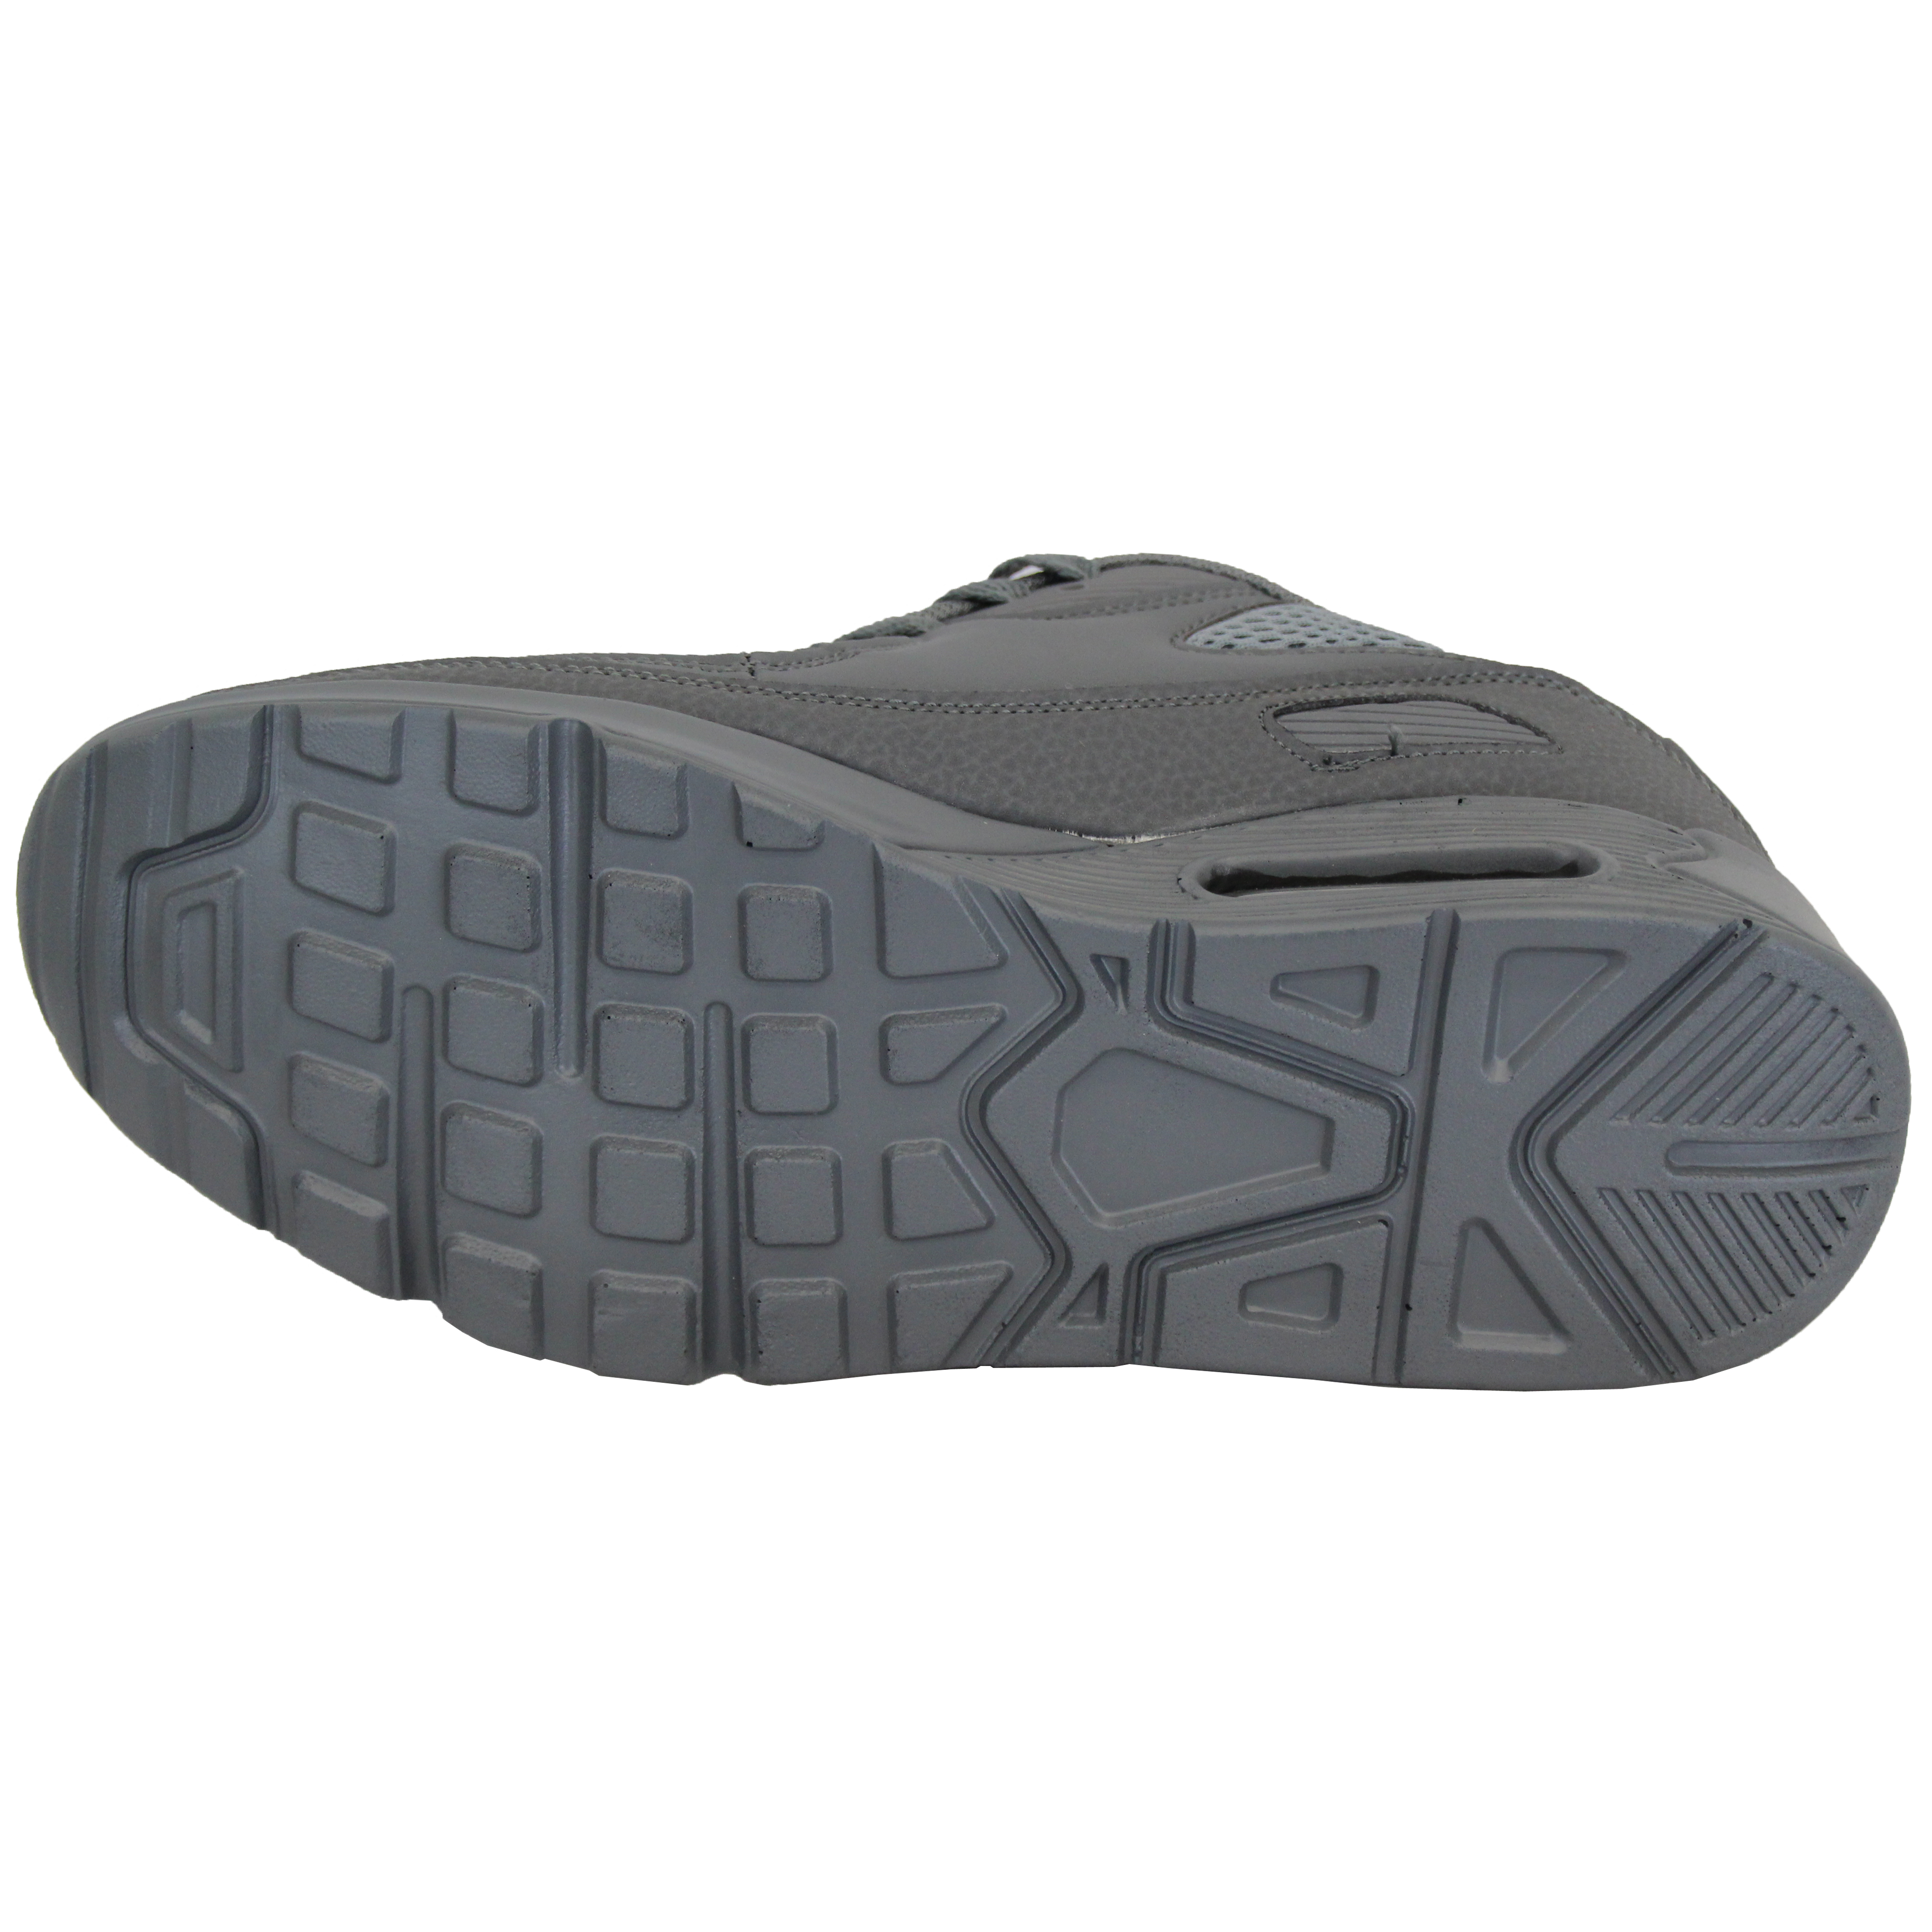 Mens-Bubble-Trainers-Lace-Up-Running-Shoes-Mesh-Jogging-Sports-Gym-Casual-New thumbnail 12